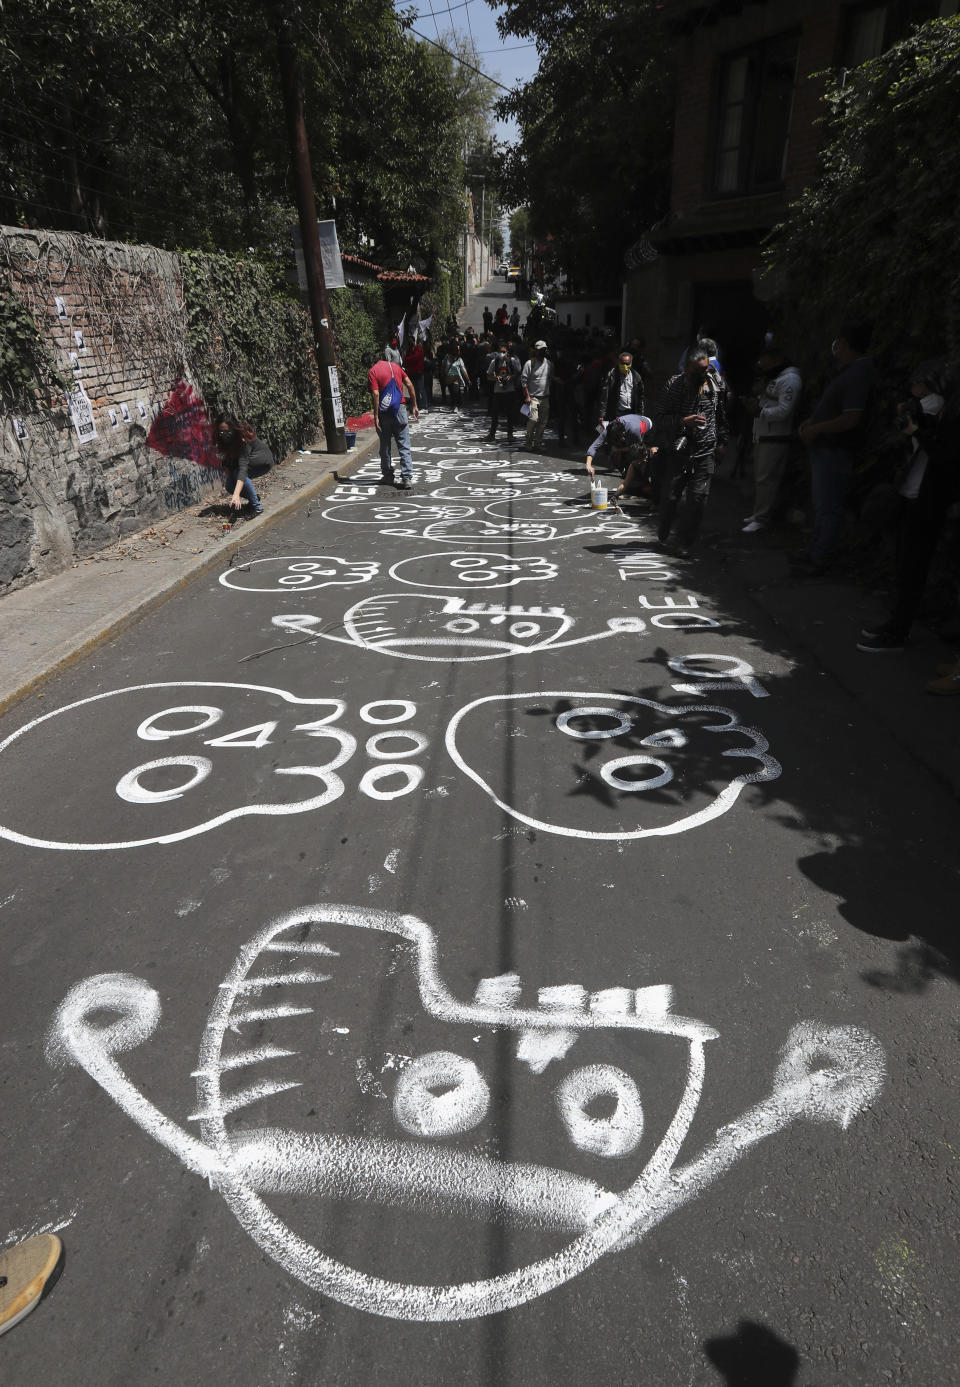 """Protesters paint skulls on the asphalt road outside the residence of former Mexican President Luis Echeverría, (1970-1976), during a march to commemorate the 50th anniversary of the student massacre of 1971 known as """"El Halconazo,"""" in Mexico City, Thursday, June 10, 2021. The attack, also known as the Corpus Christi massacre, was carried out by a group of men apparently recruited by the government to dissolve a pro-democracy student demonstration. (AP Photo/Marco Ugarte)"""